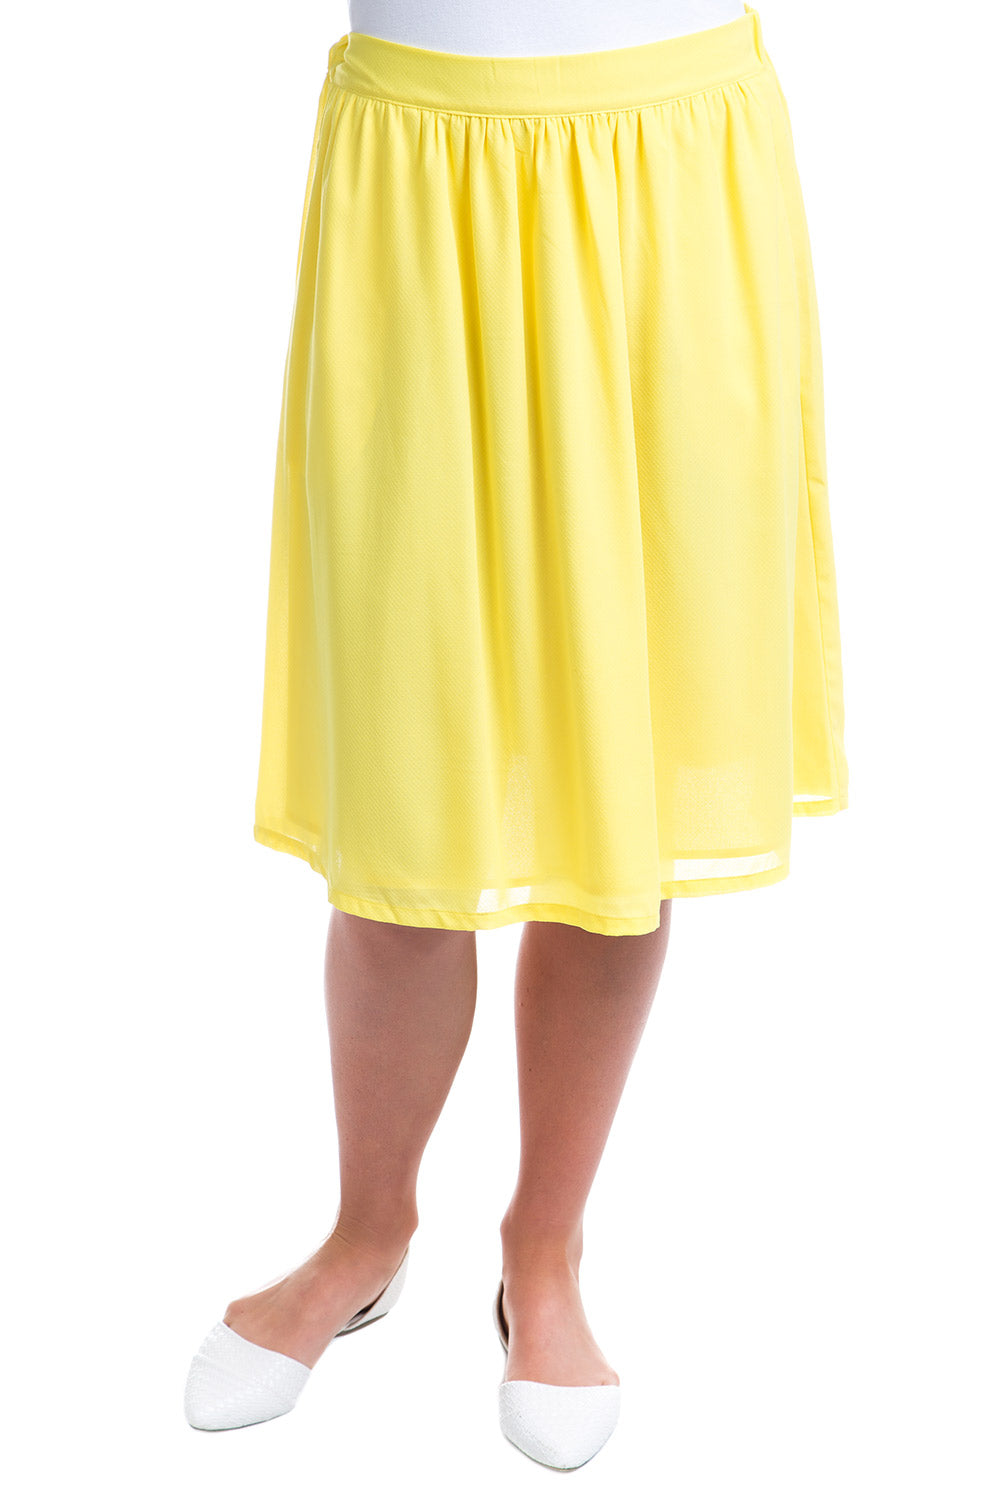 Type 1 Lemon Drop Skirt